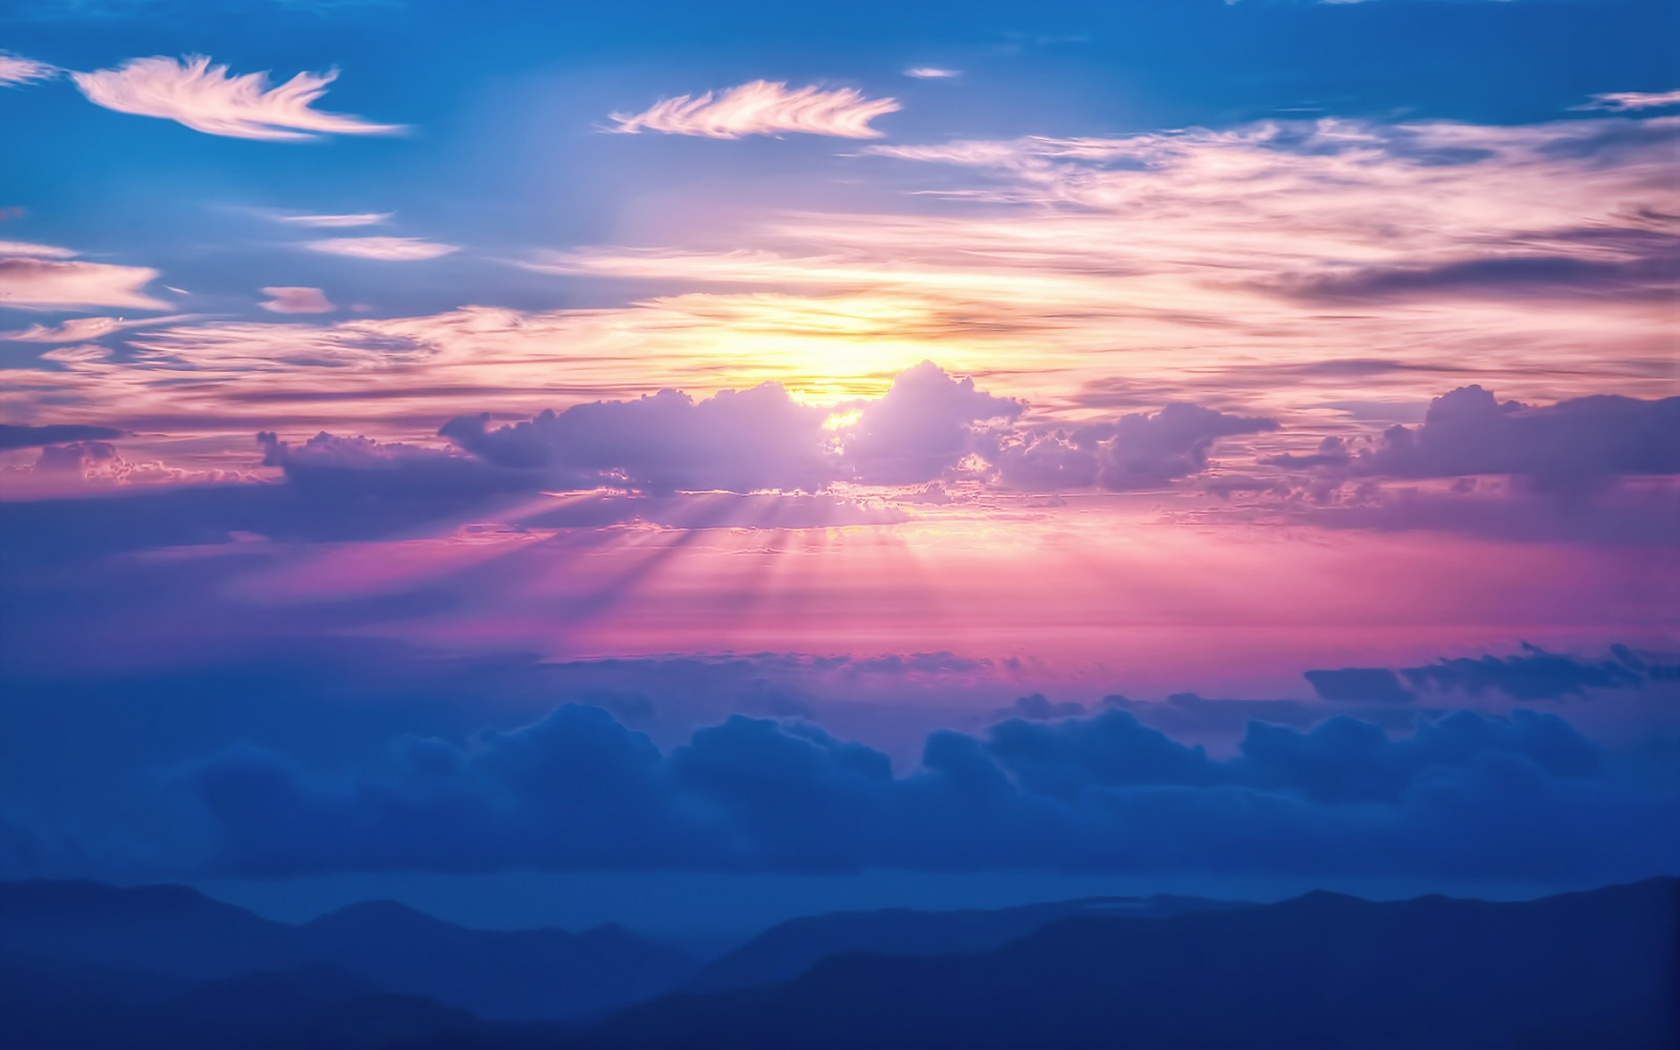 Sunrays Sky Clouds Wallpapers In Jpg Format For Free Download